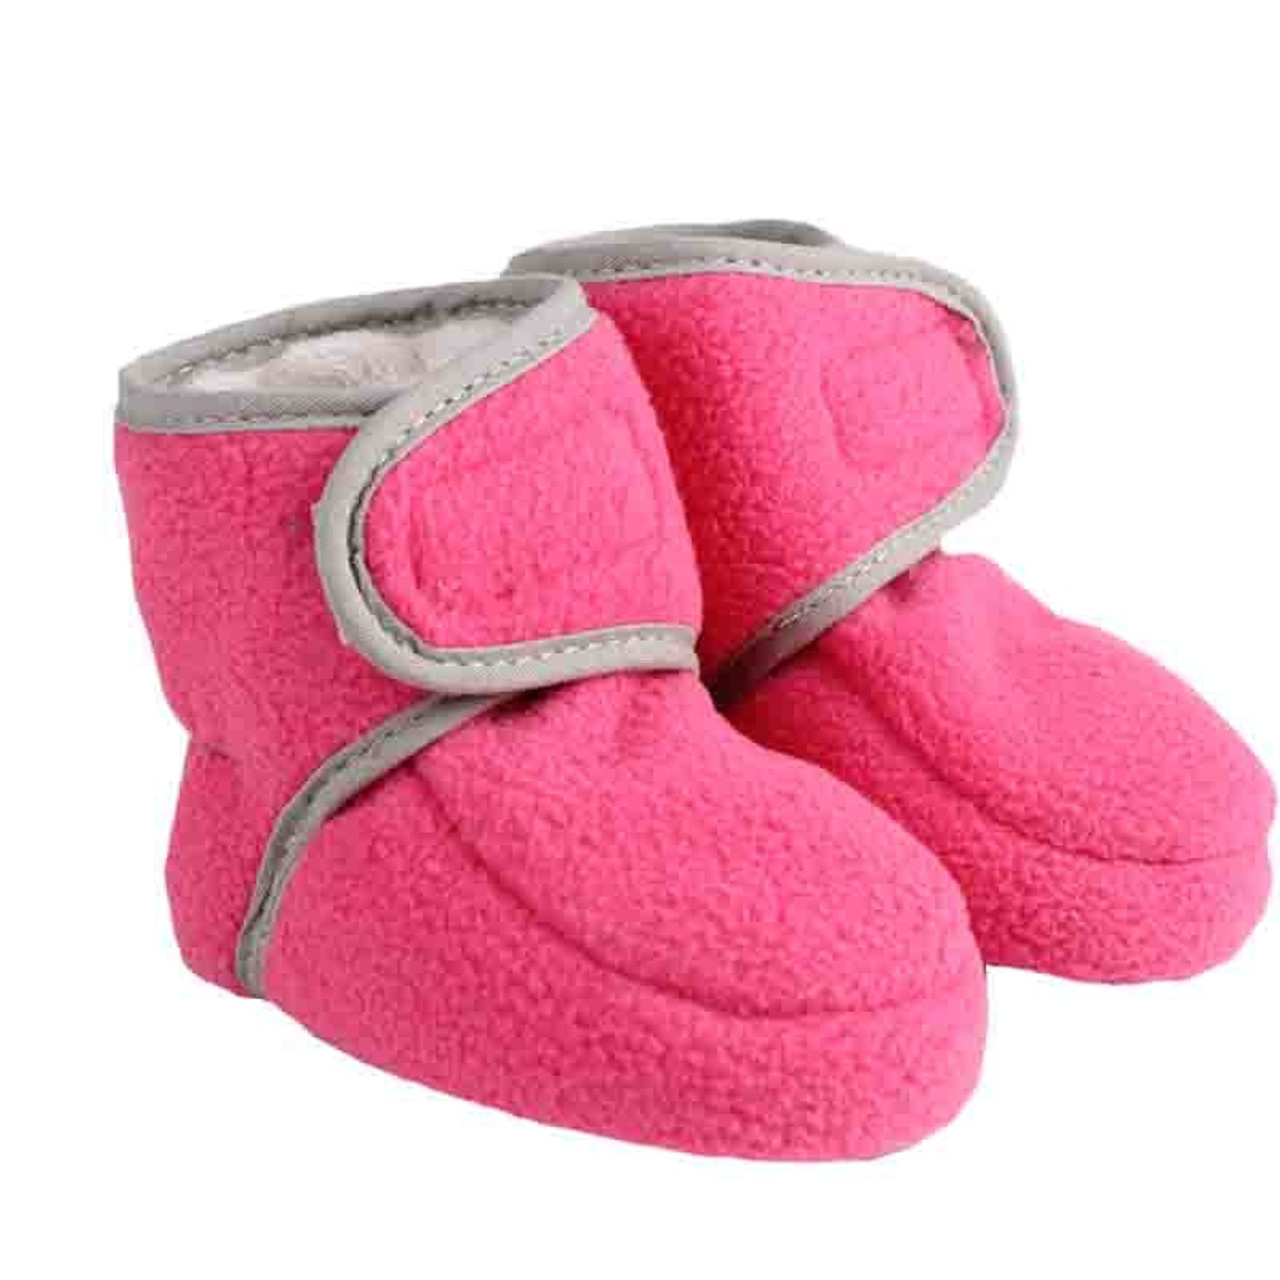 90cec4e39 ... Baby first walkers Winter Shoes Warm Cute Baby boys Cotton Boots  Newborn Infant Soft Solid Toddlers ...